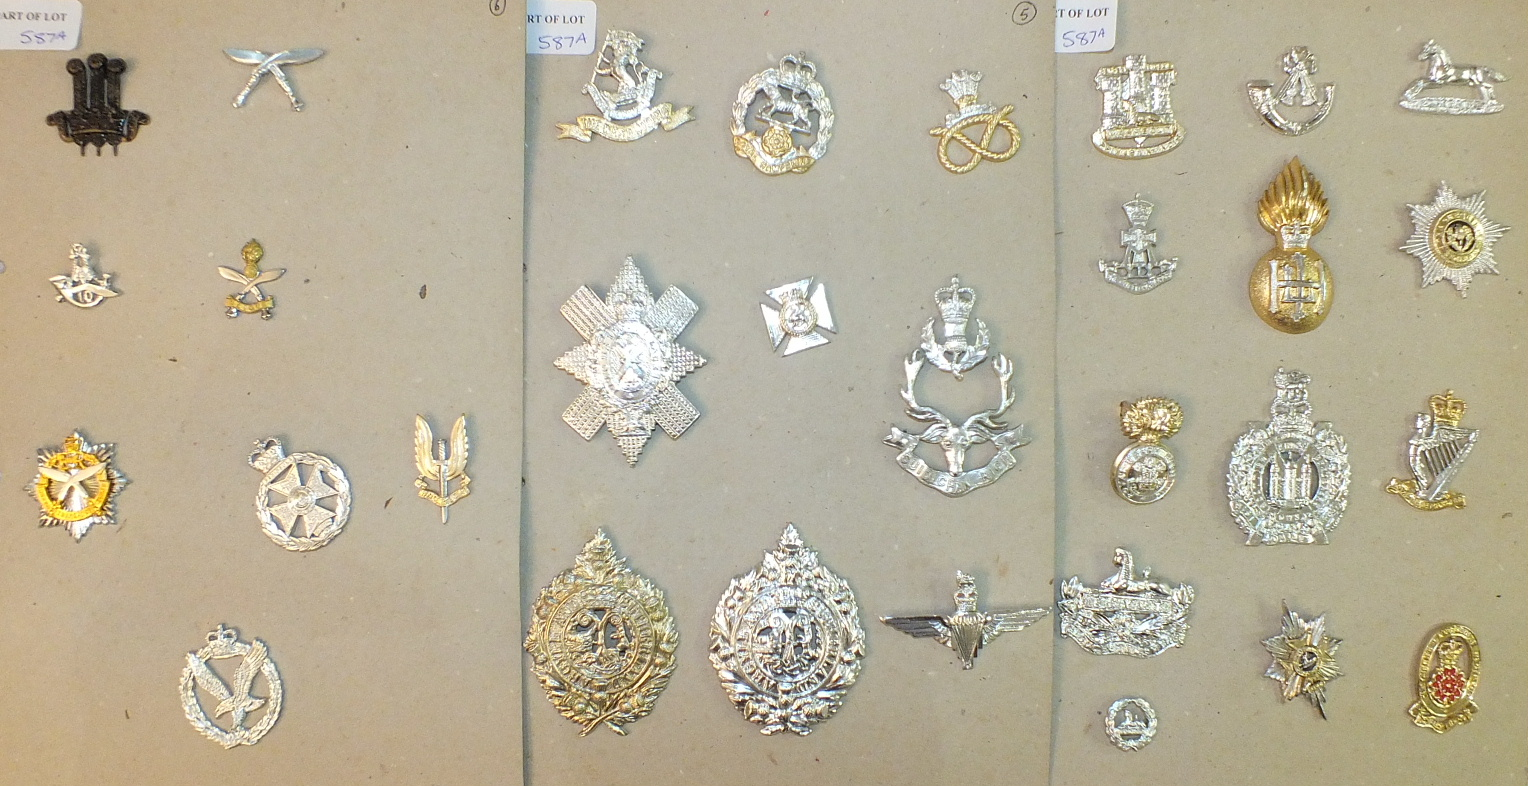 Lot 587A - A large collection of Staybright British Army cap badges, including Royal Army Chaplain badges,